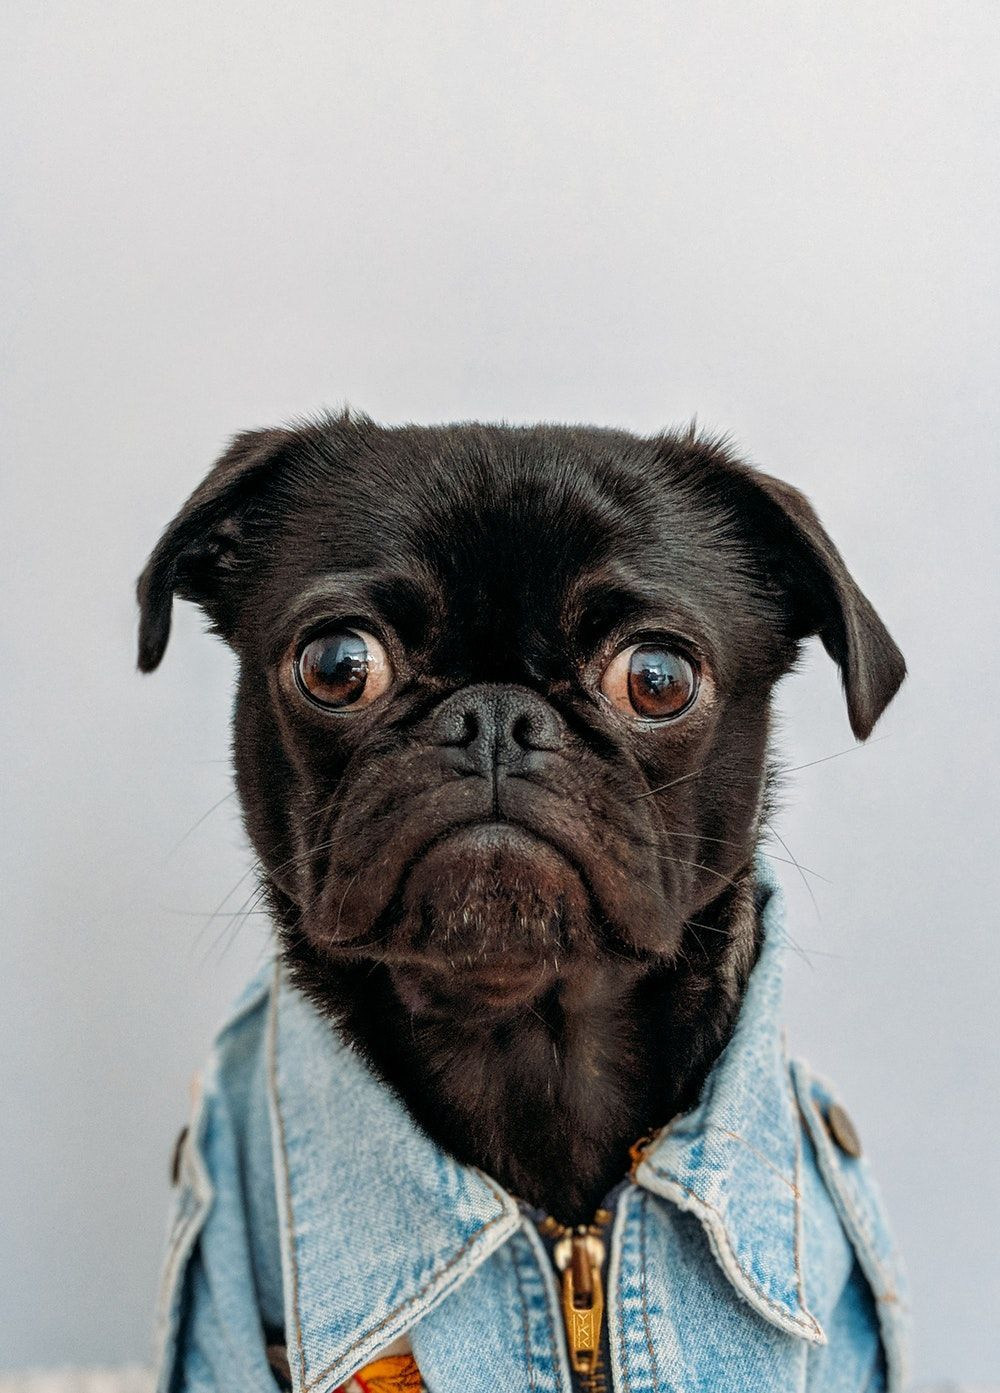 Black Pug Wearing A Jean Jacket Pugs Pug Big Dogs Dogs Dogs